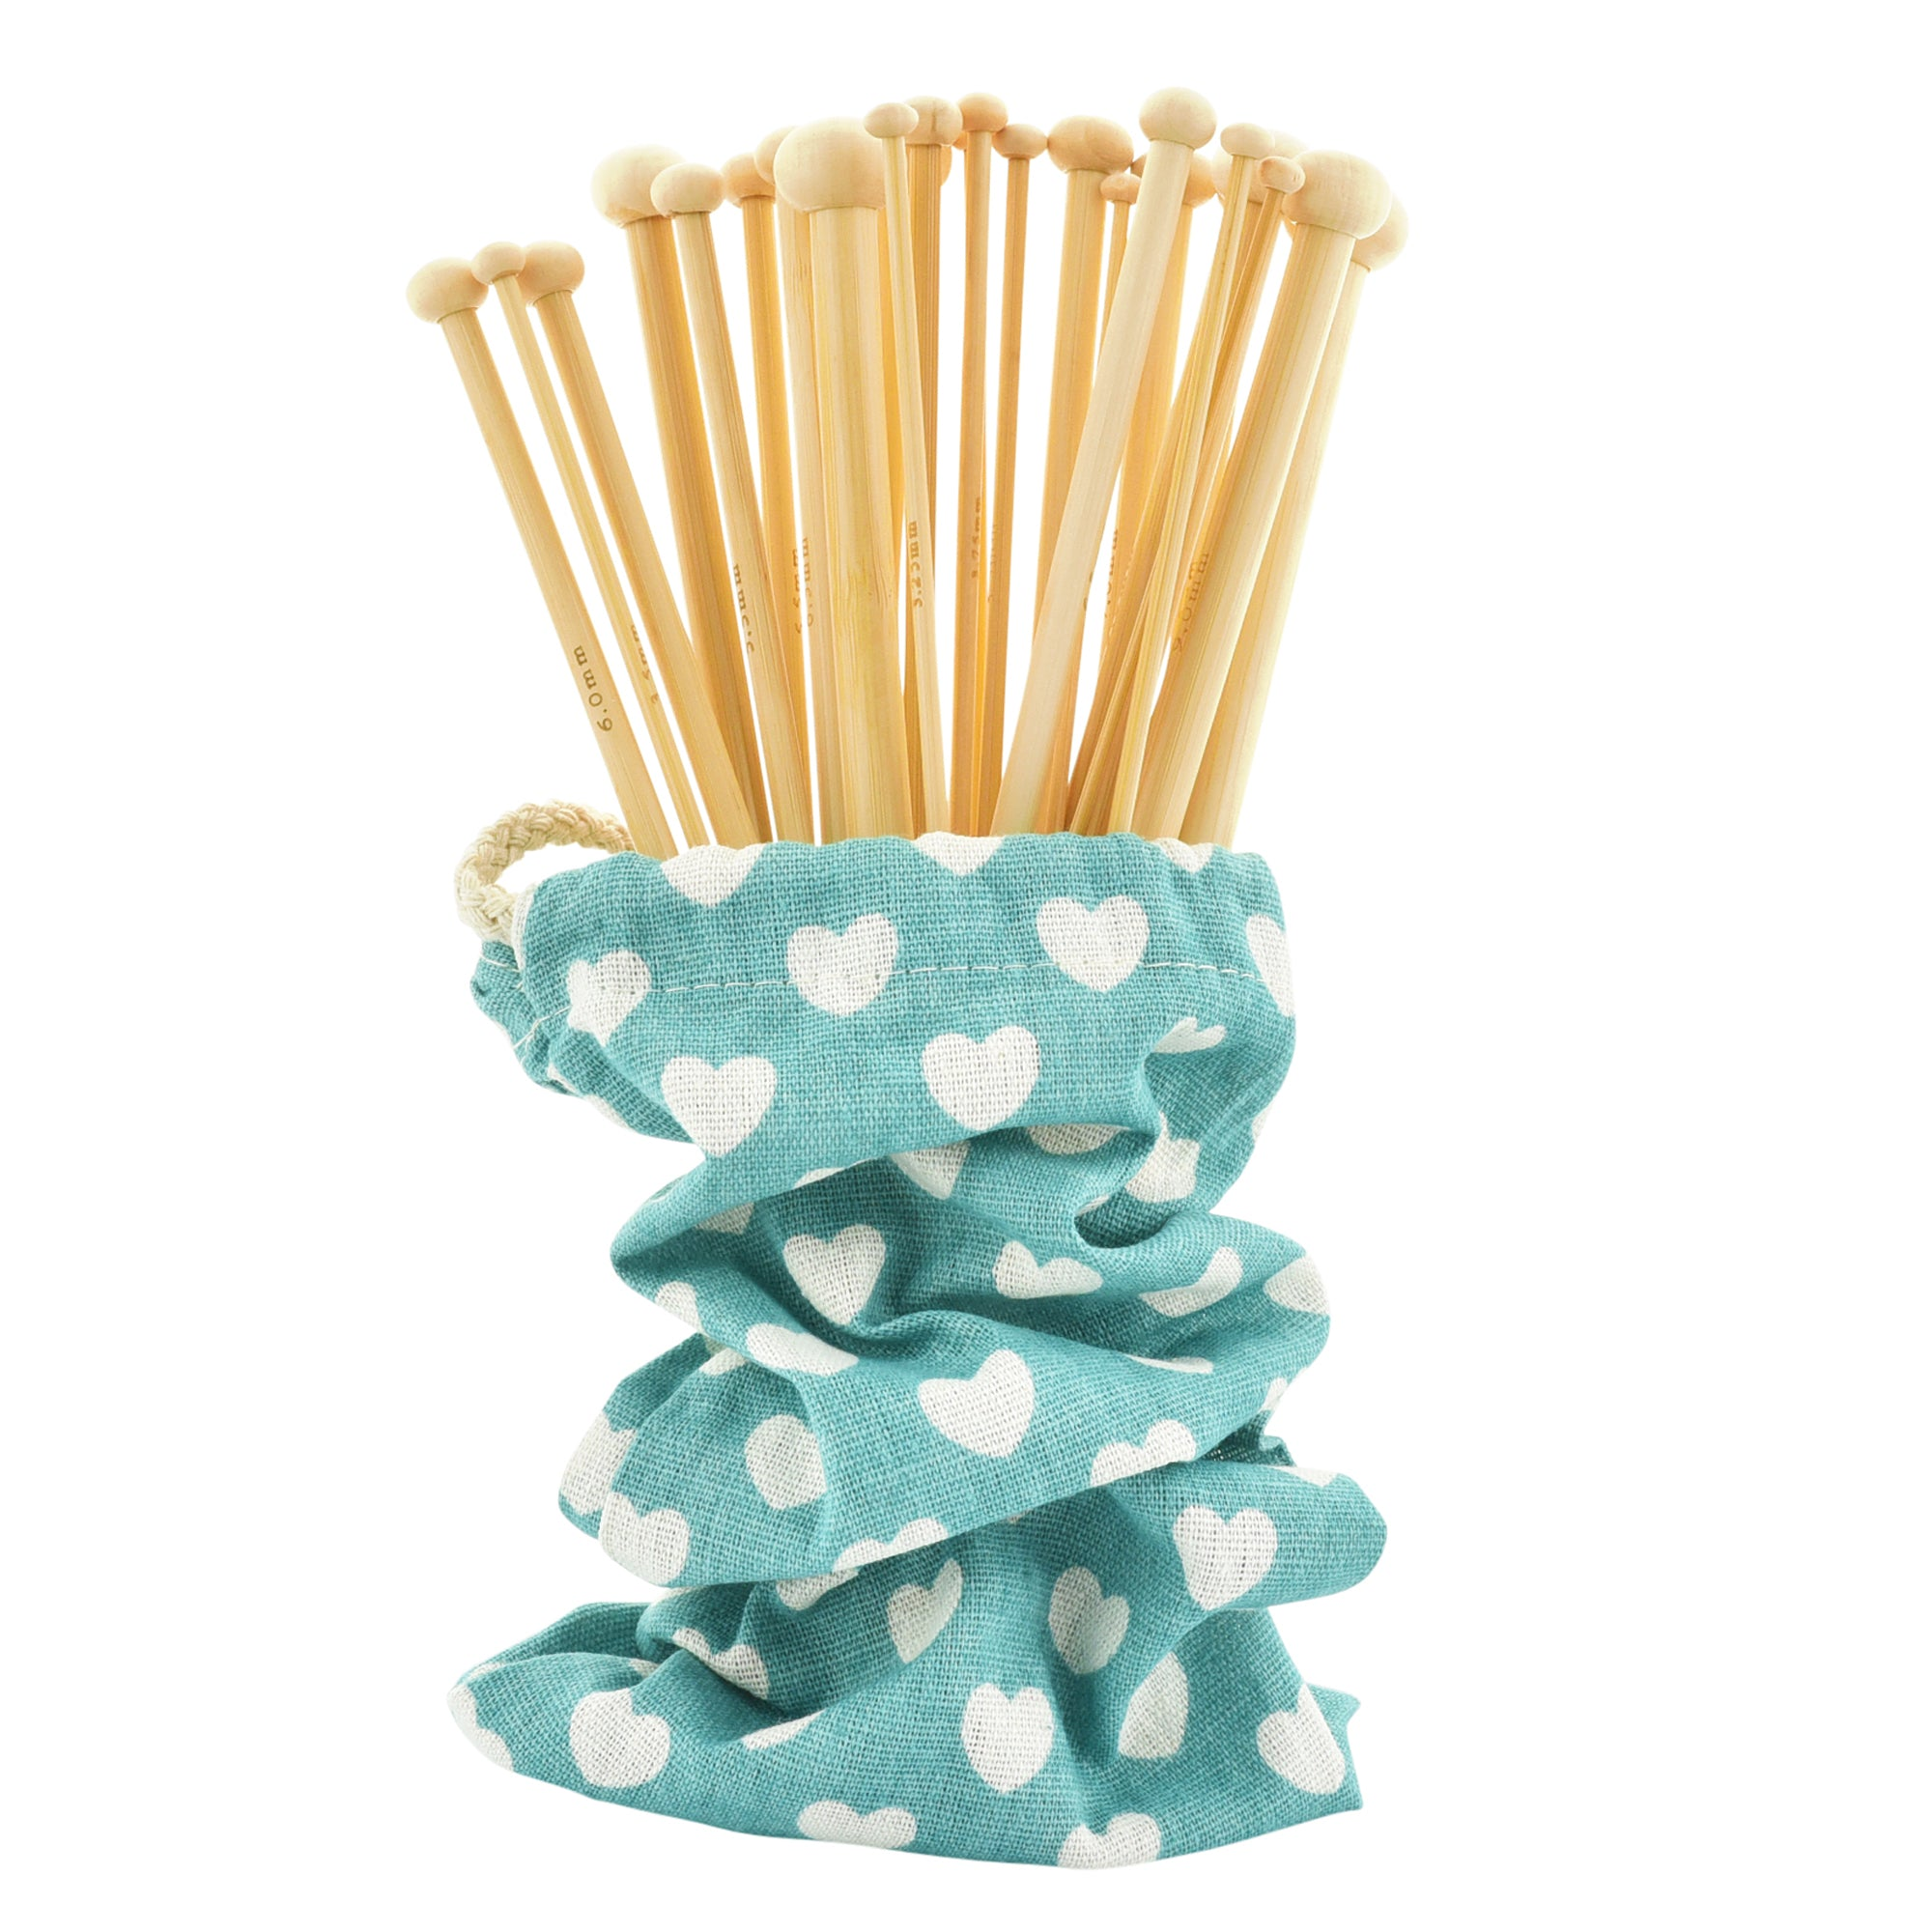 18 Pairs Smooth Bamboo Knitting Needles with Pouch